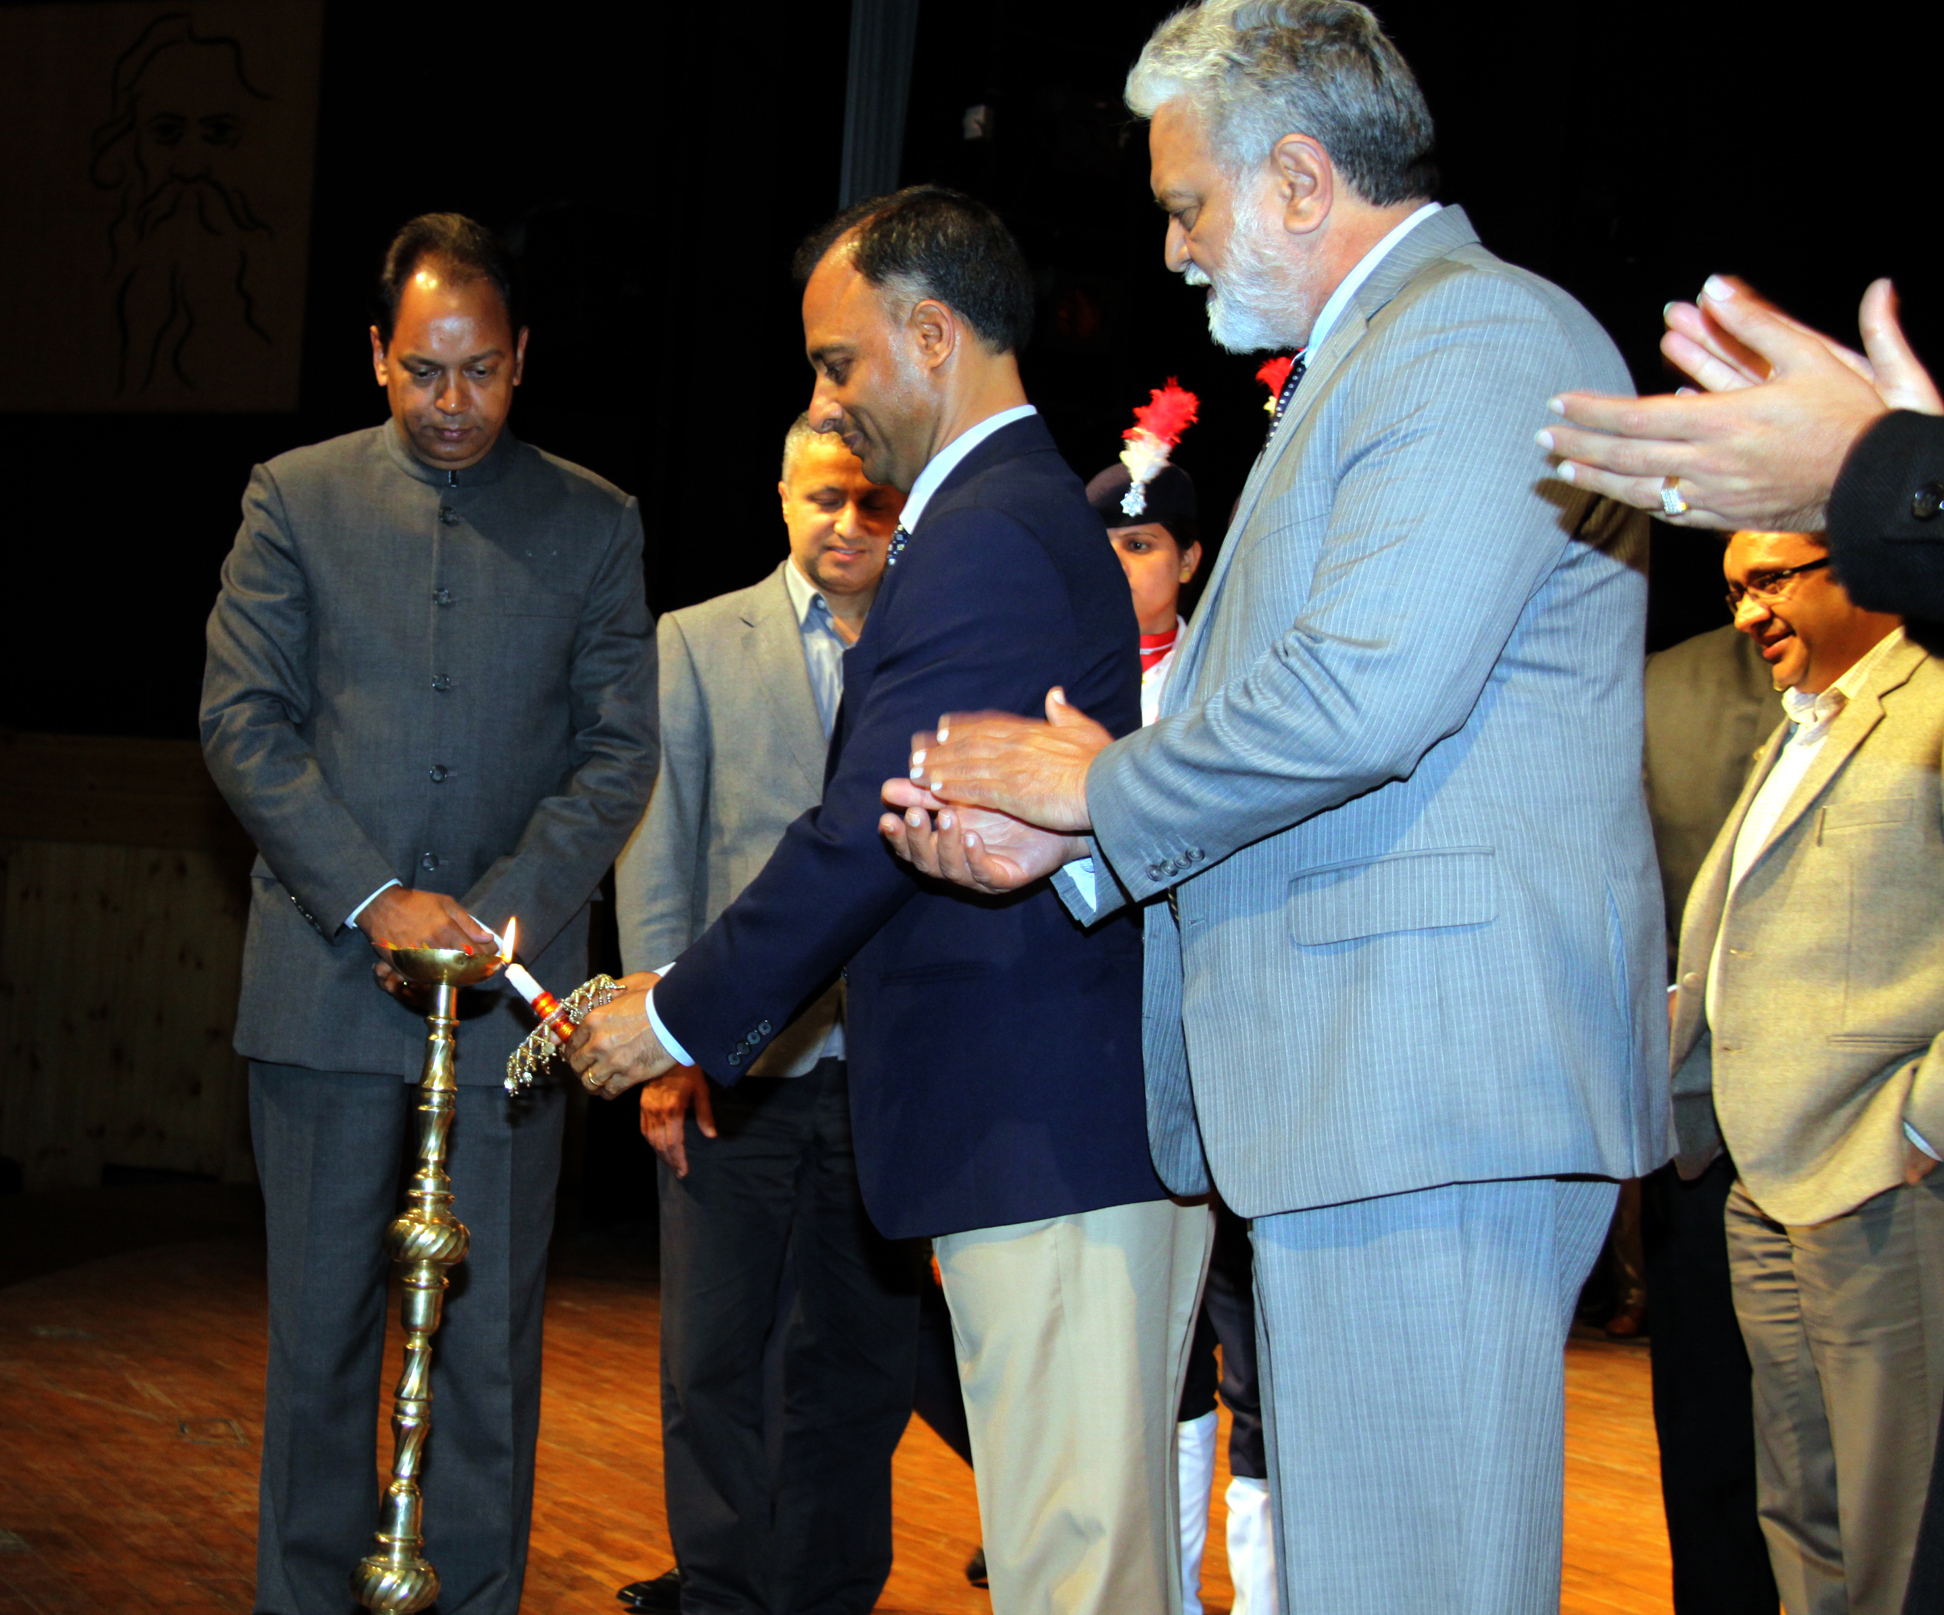 The Adviser to the Administrator, UT, Chandigarh, Mr. Vijay Kumar Dev lighting the traditional lamp at the inauguration of Traffic Awareness Function and Cultural Evening at Tagore Theatre, Sector-18, Chandigarh on Tuesday, January 27, 2015.